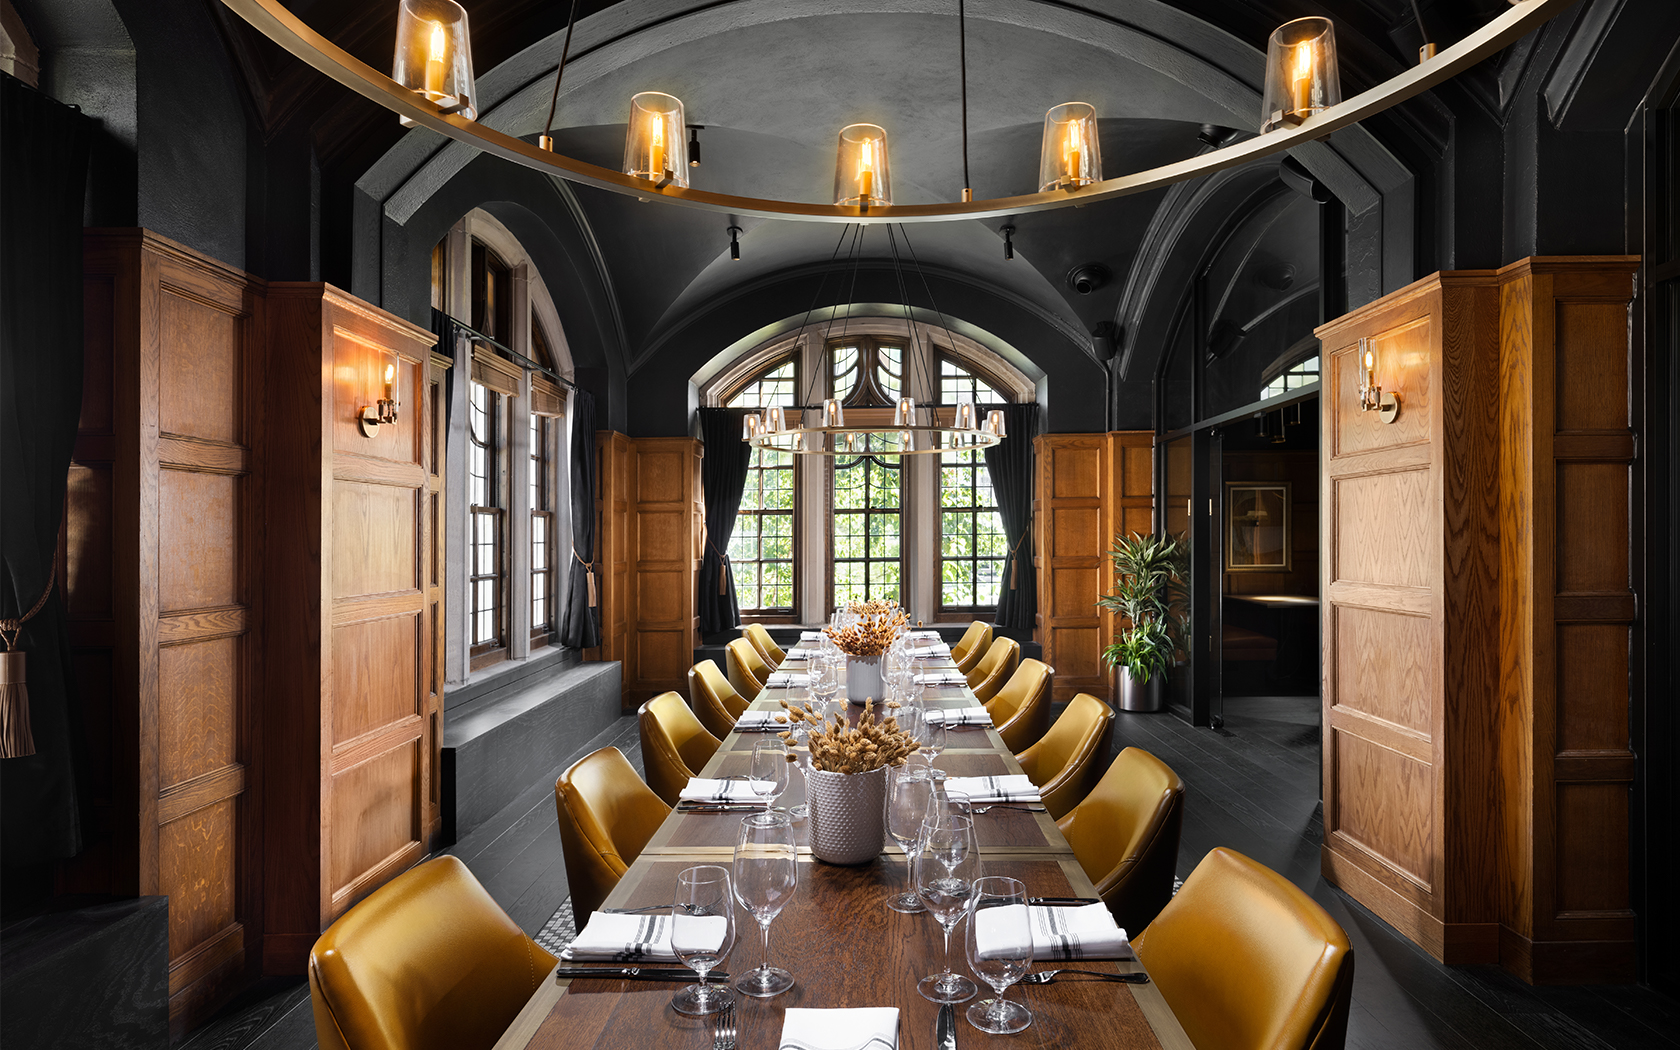 private dining room with long rectangular table and yellow seats